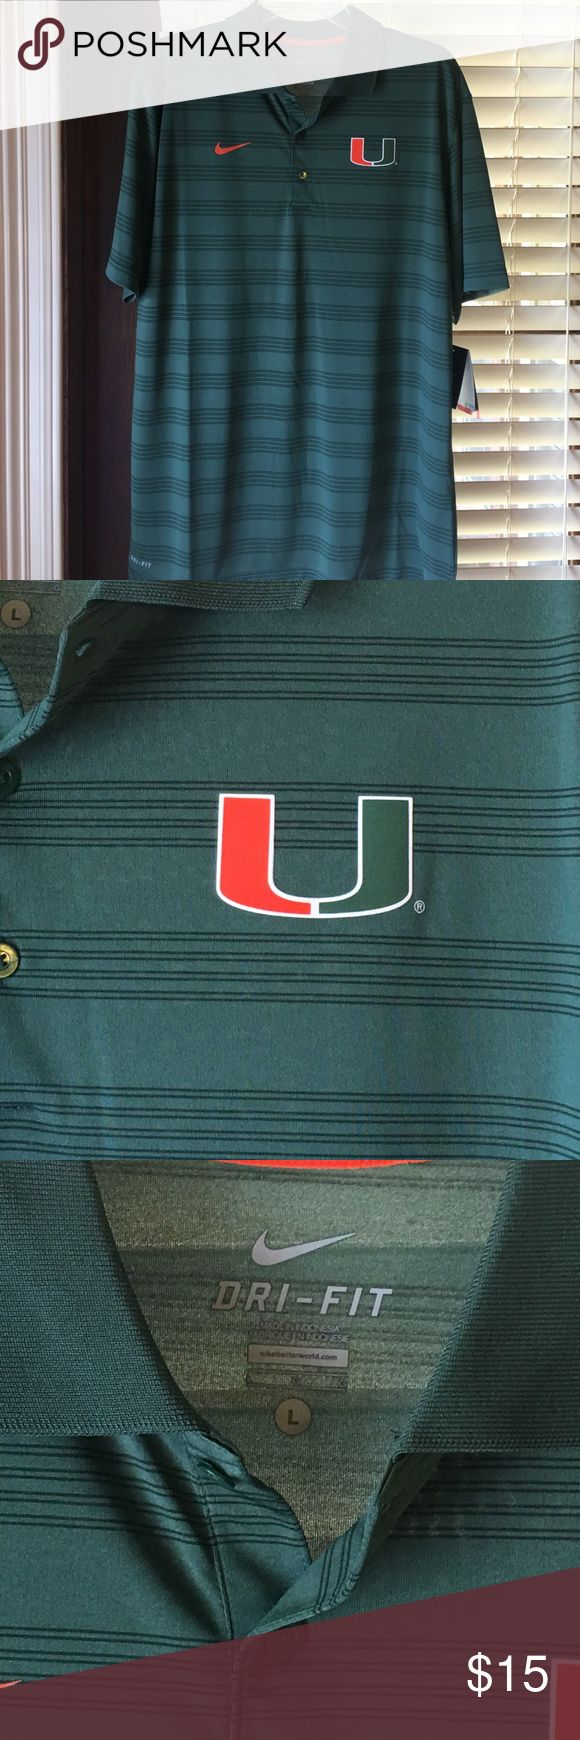 NWT Nike Dri Fit University of Miami polo shirt NWT Nike Dri Fit University of Miami men's polo shirt, Size L.  Retailed in the campus bookstore for $65.  Smoke free home.  Thanks! Nike Shirts Polos